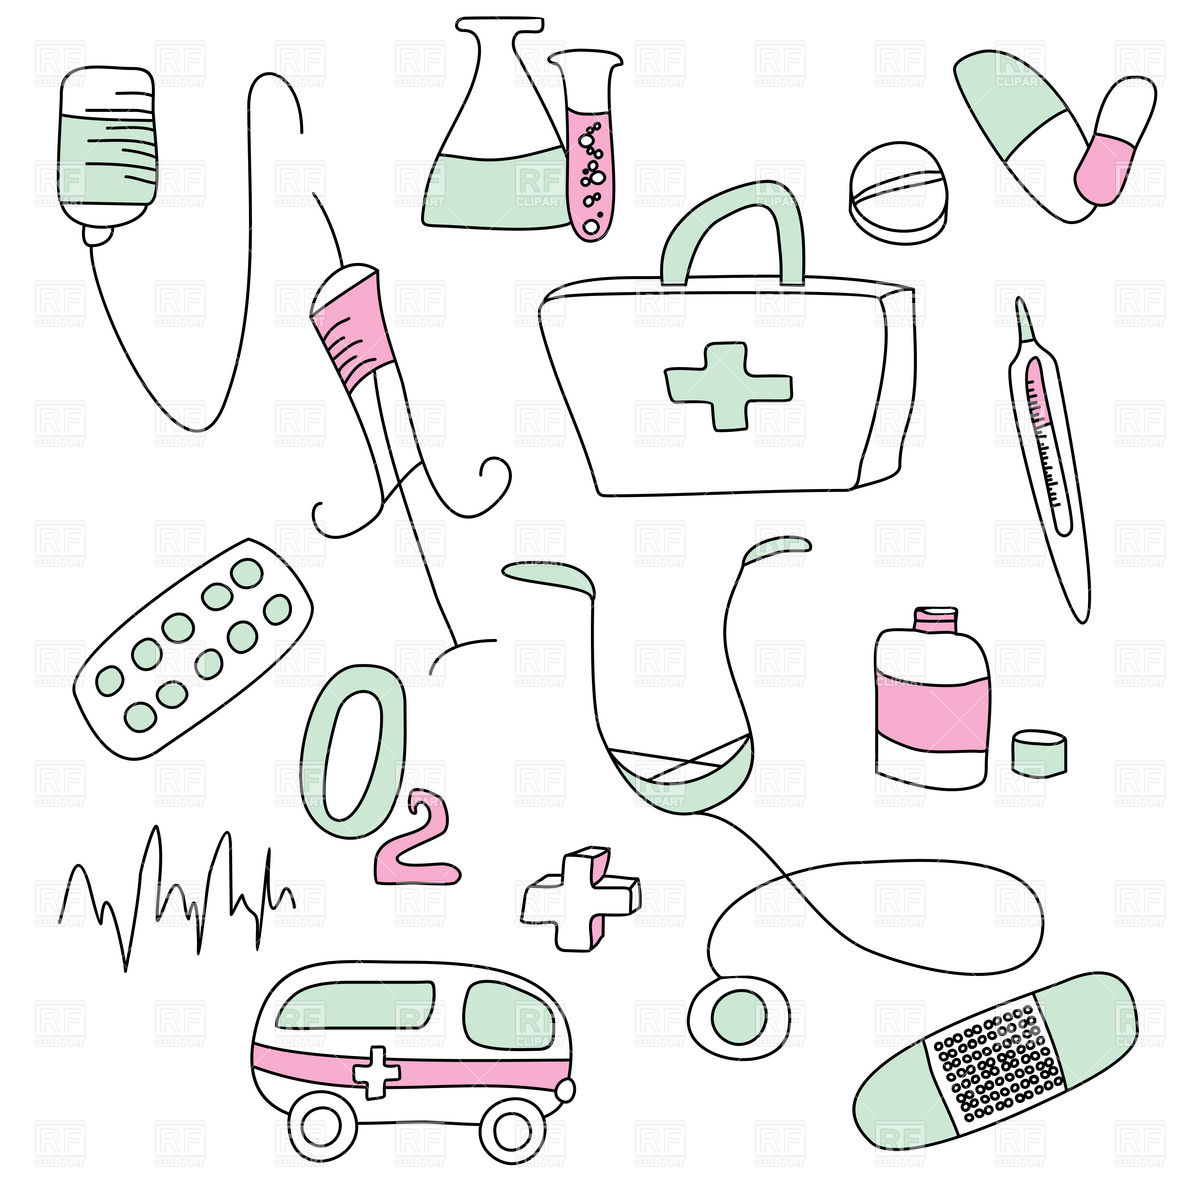 Medical supplies clipart 20 free Cliparts | Download ...